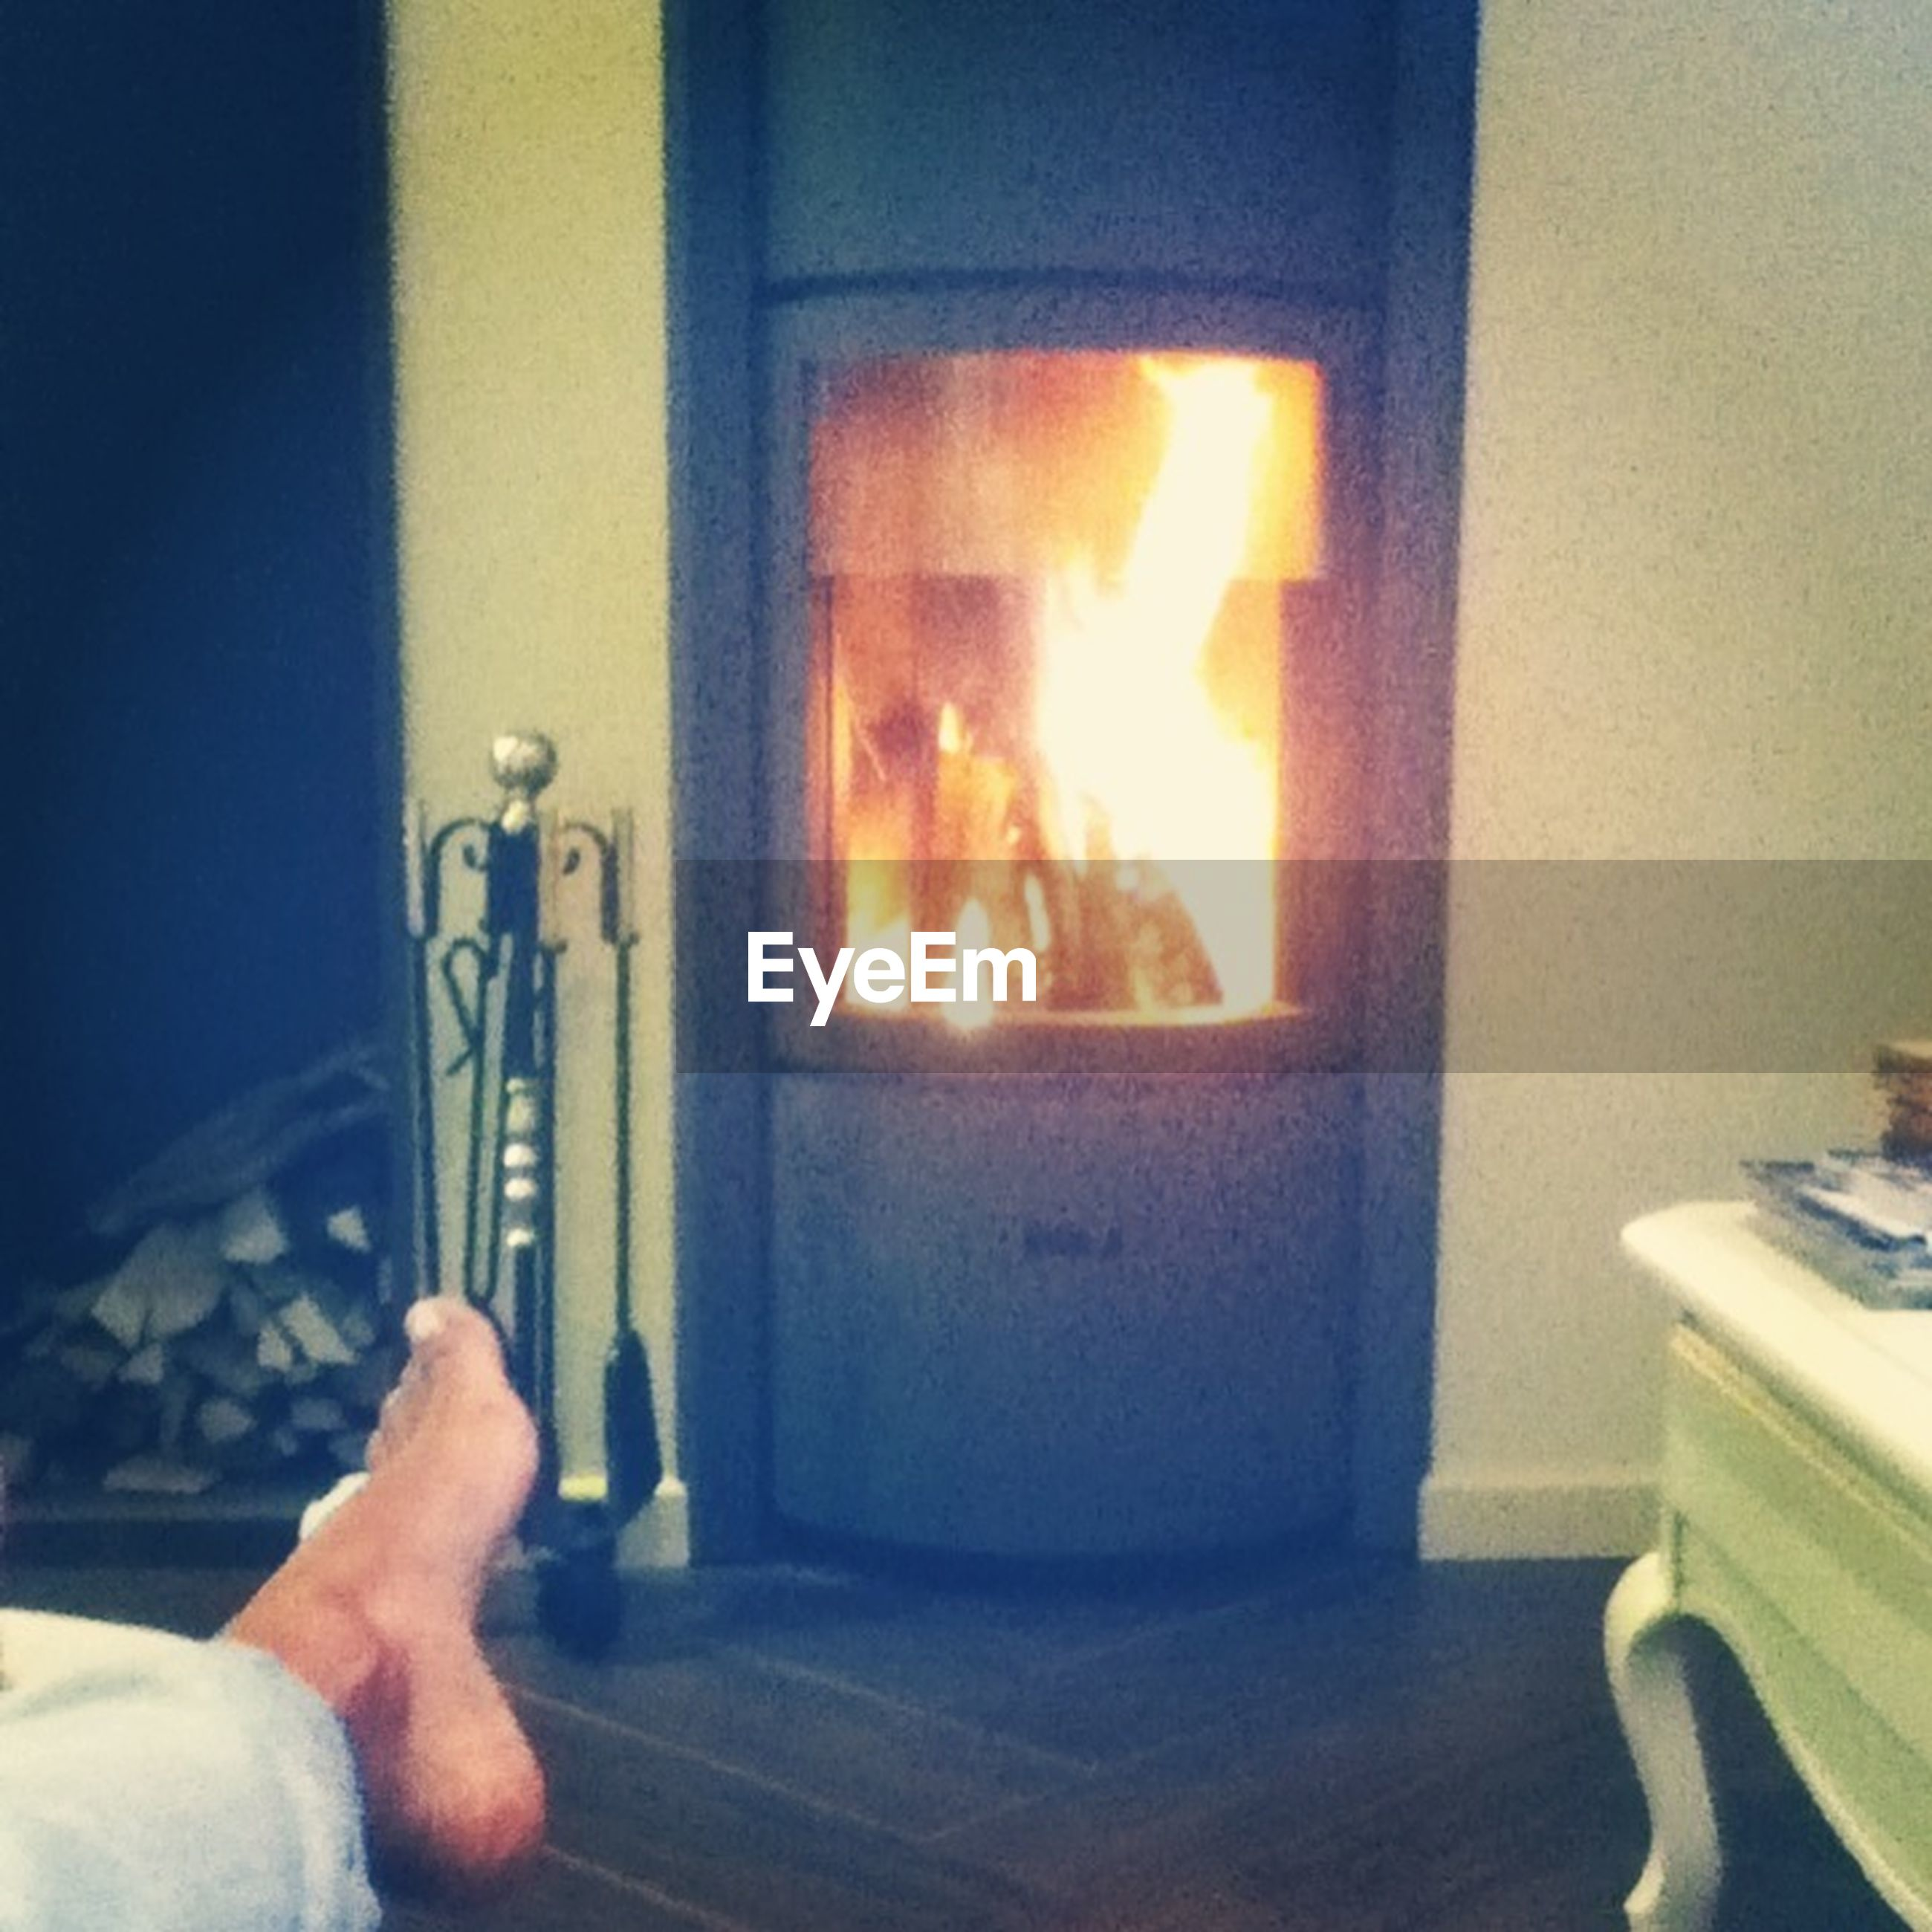 person, indoors, part of, holding, unrecognizable person, cropped, personal perspective, men, lifestyles, human finger, flame, burning, home interior, leisure activity, heat - temperature, illuminated, domestic room